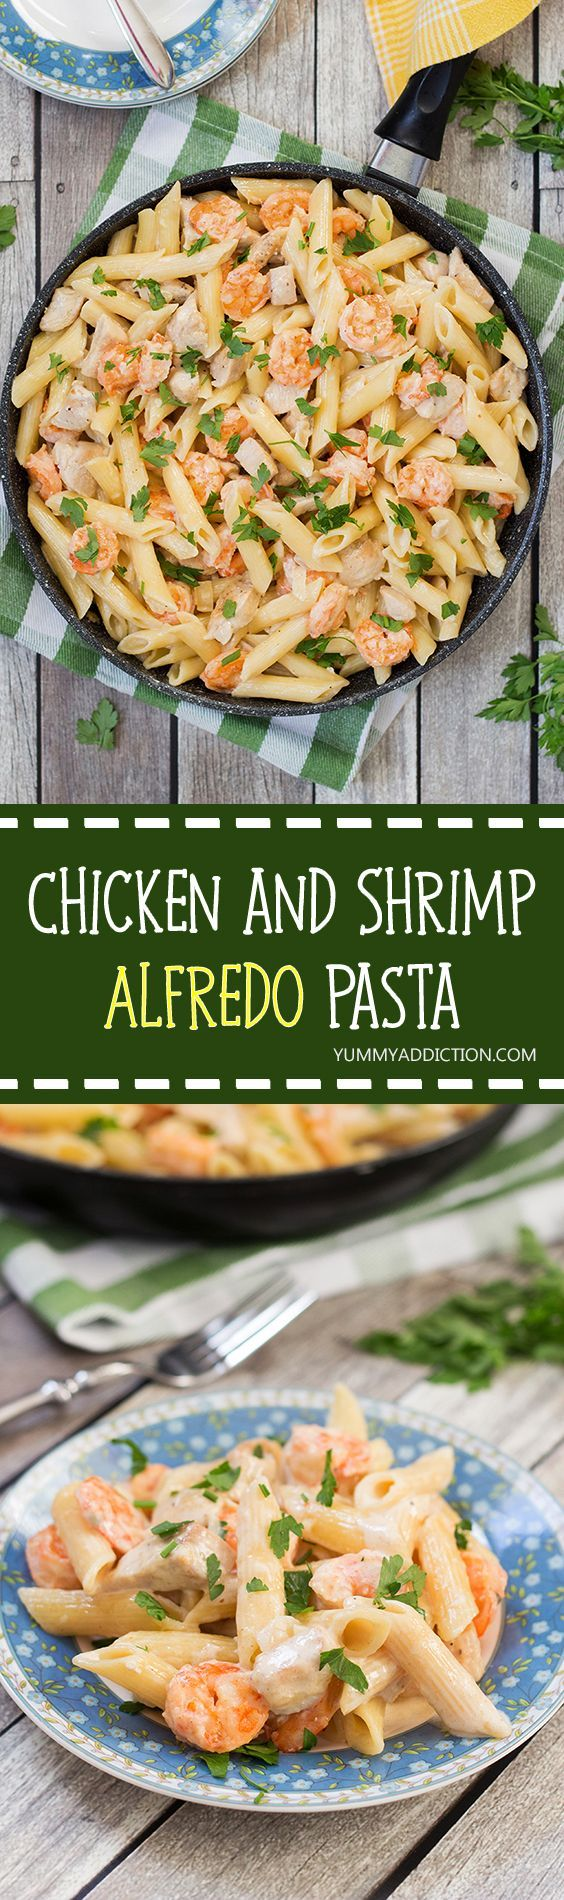 This Chicken and Shrimp Alfredo Pasta is creamy, hearty and filling. Comfort food at its best!   yummyaddiction.com